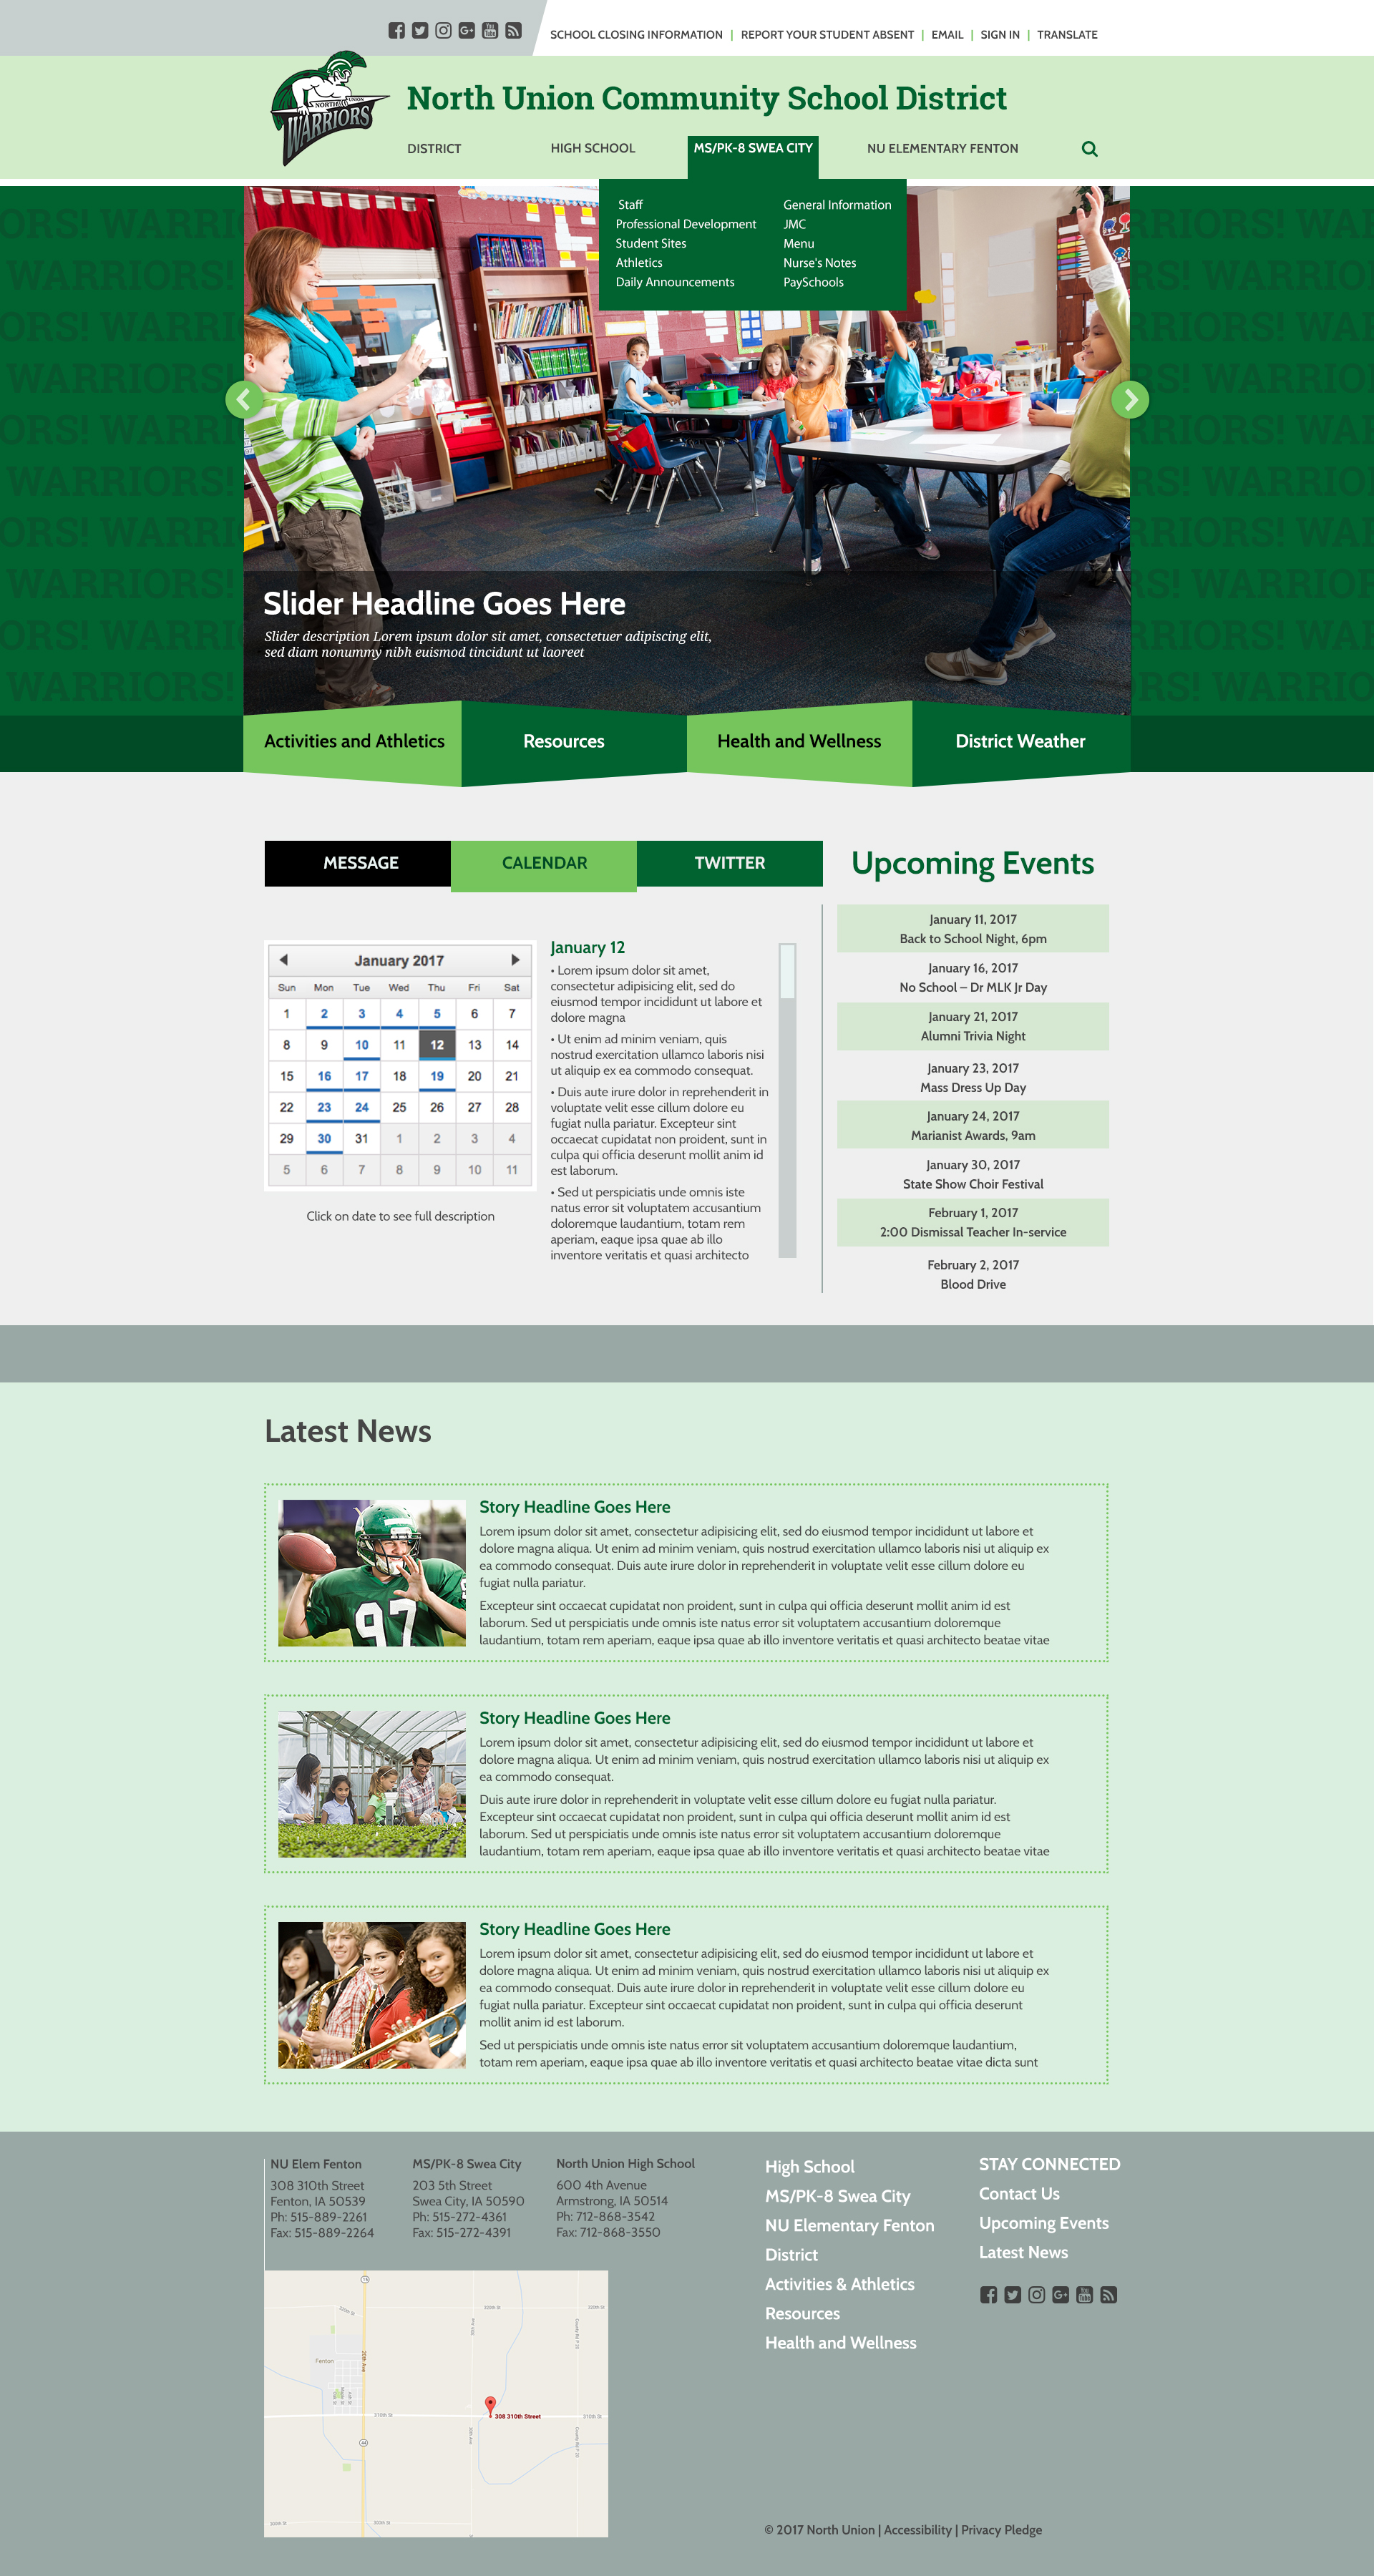 Design #1 - Homepage with Hover